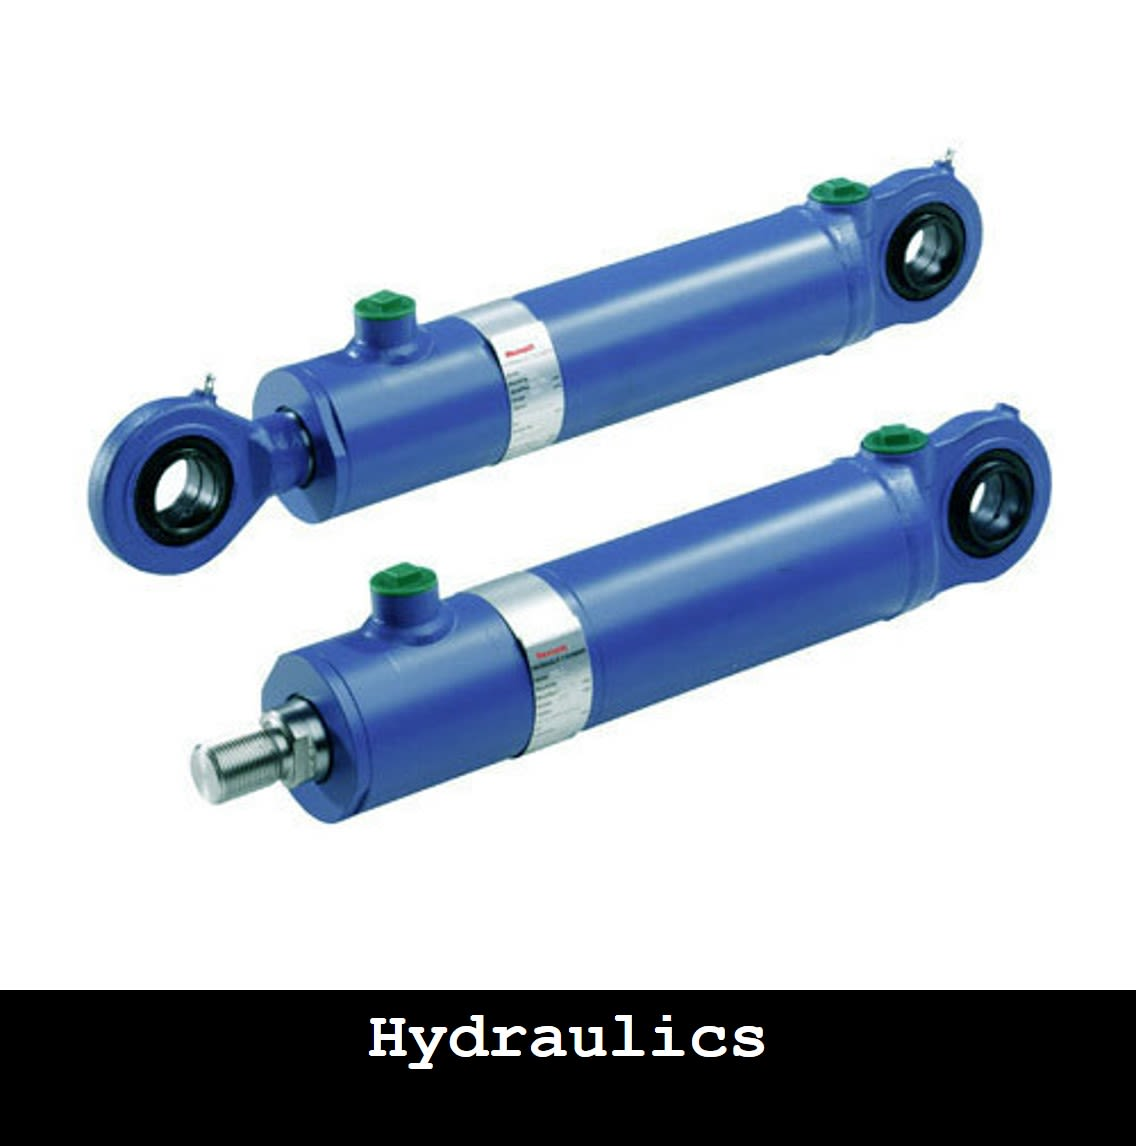 Hydraulics | Smith Industrial Supply | Port Colborne Industrial Supply